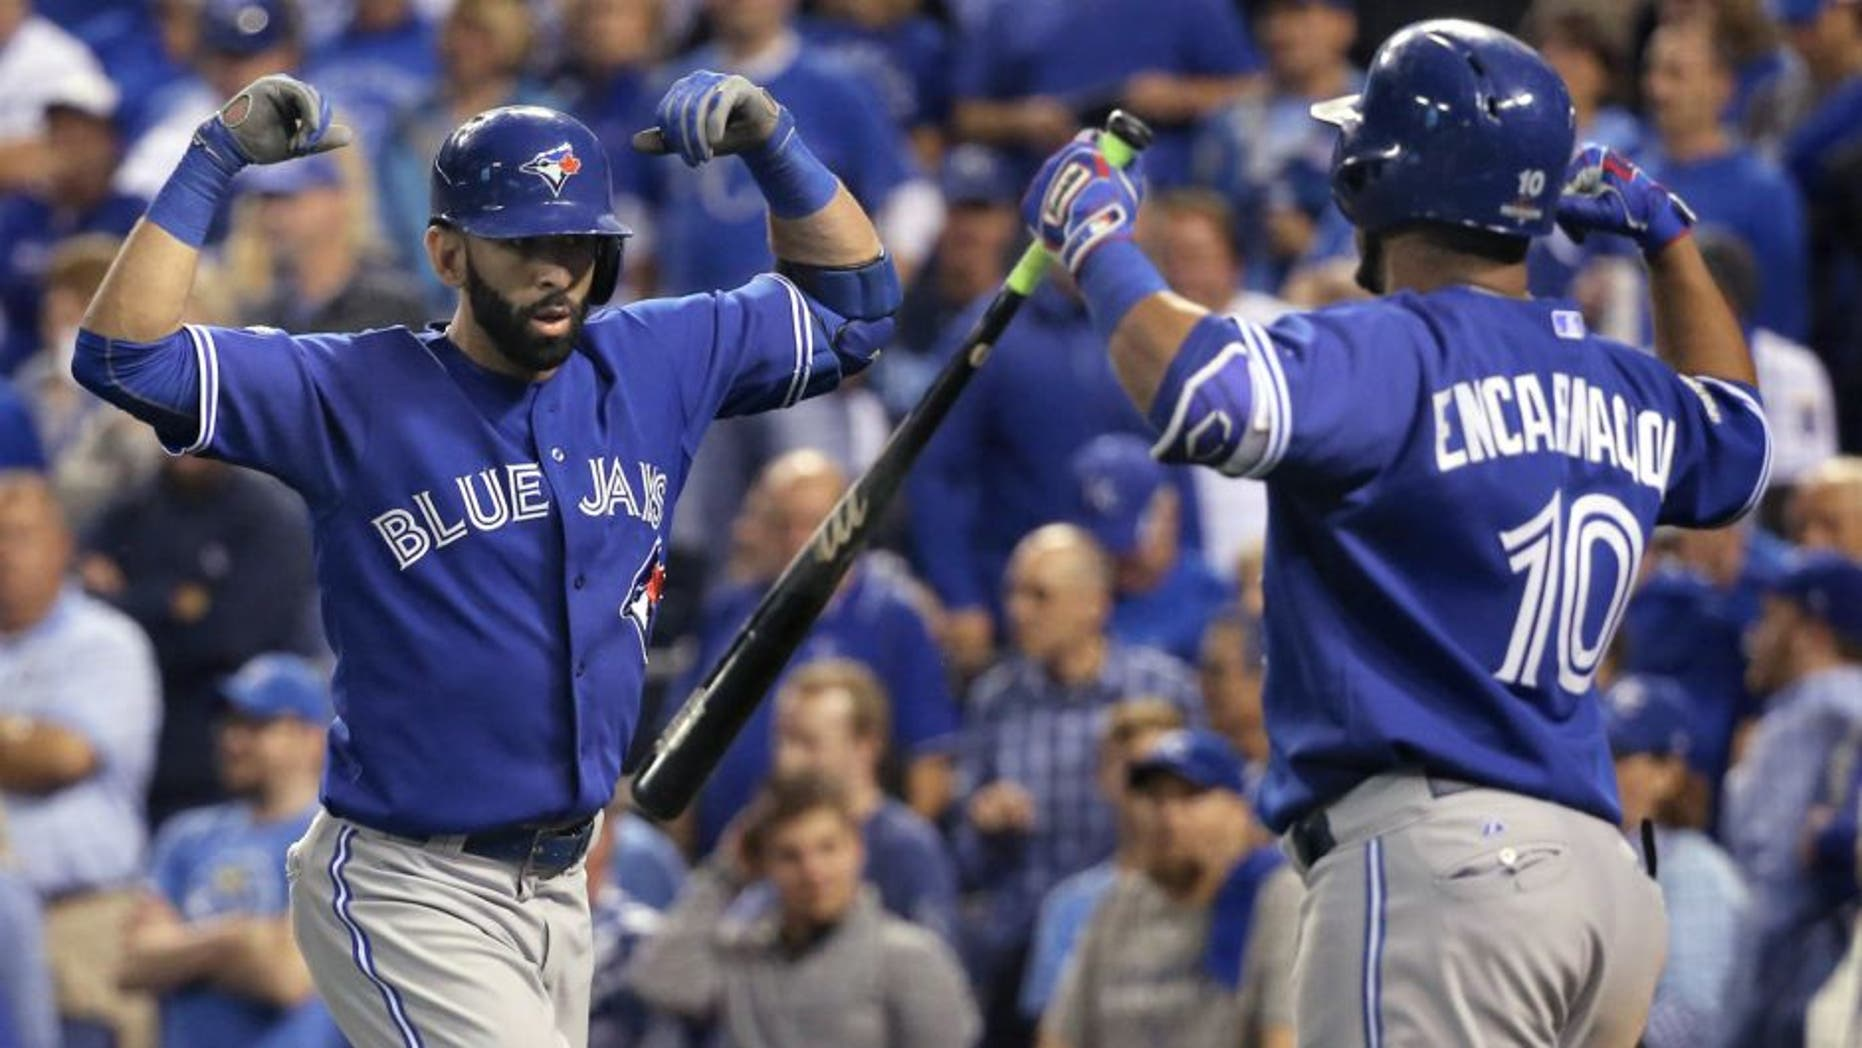 KANSAS CITY, MO - OCTOBER 23: Toronto Blue Jays right fielder Jose Bautista (19) and Toronto Blue Jays designated hitter Edwin Encarnacion (10) celebrate Bautista's 2 run home run in the top of the 8th inning to tie the game. Toronto Blue Jays Vs Kansas City Royals in Game 6 of the ALCS at Kauffman Field. Jays lose 4-3 and lose the series 4-2. Kansas City goes on to the World Series against the New York Mets. Toronto Star/Rick Madonik (Rick Madonik/Toronto Star via Getty Images)